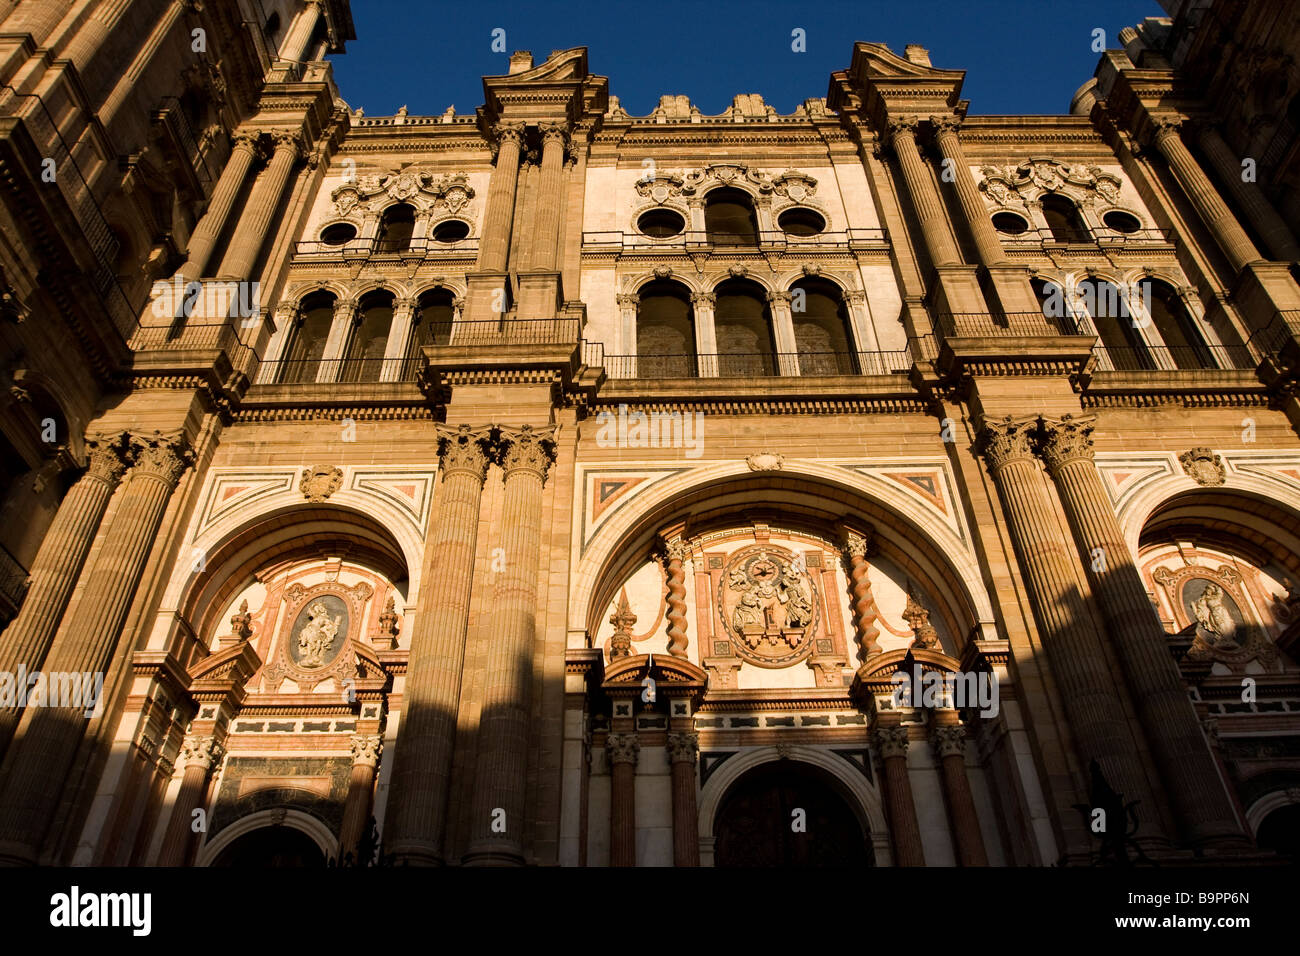 Malaga Cathedral, Spain - Stock Image